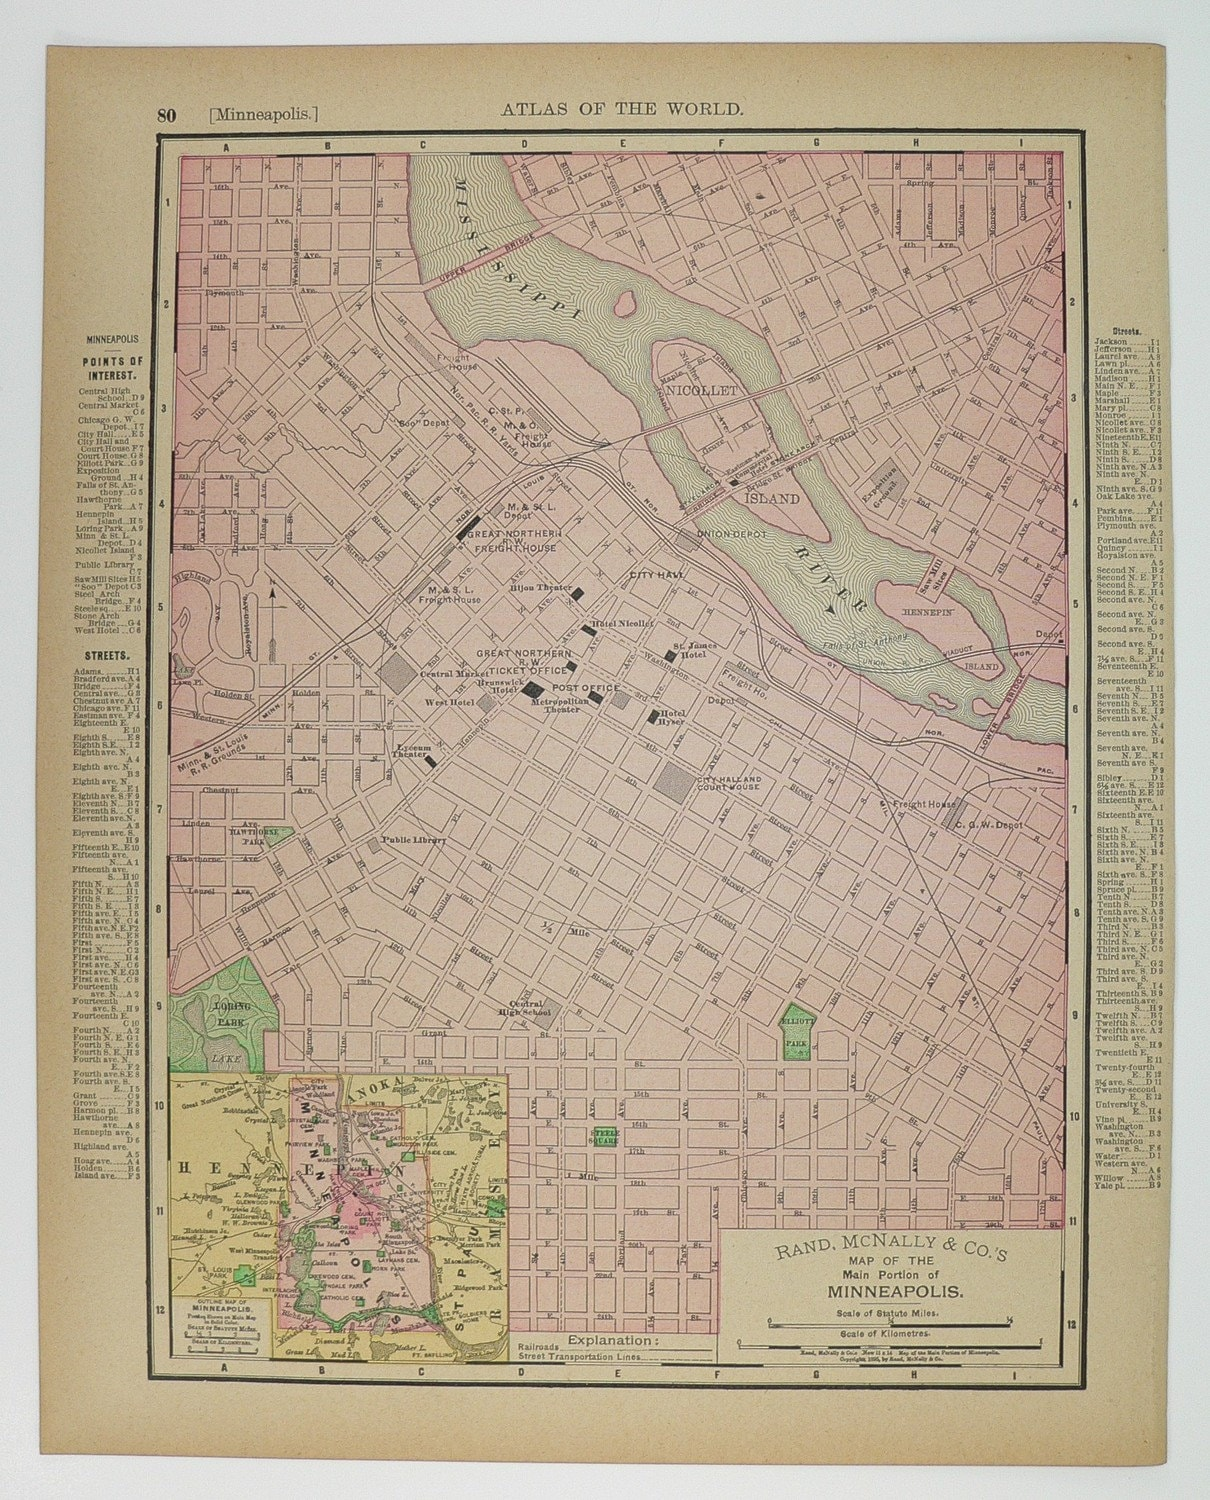 St Paul and Minnesapolis Minnesota 1897 Antique City Street Map